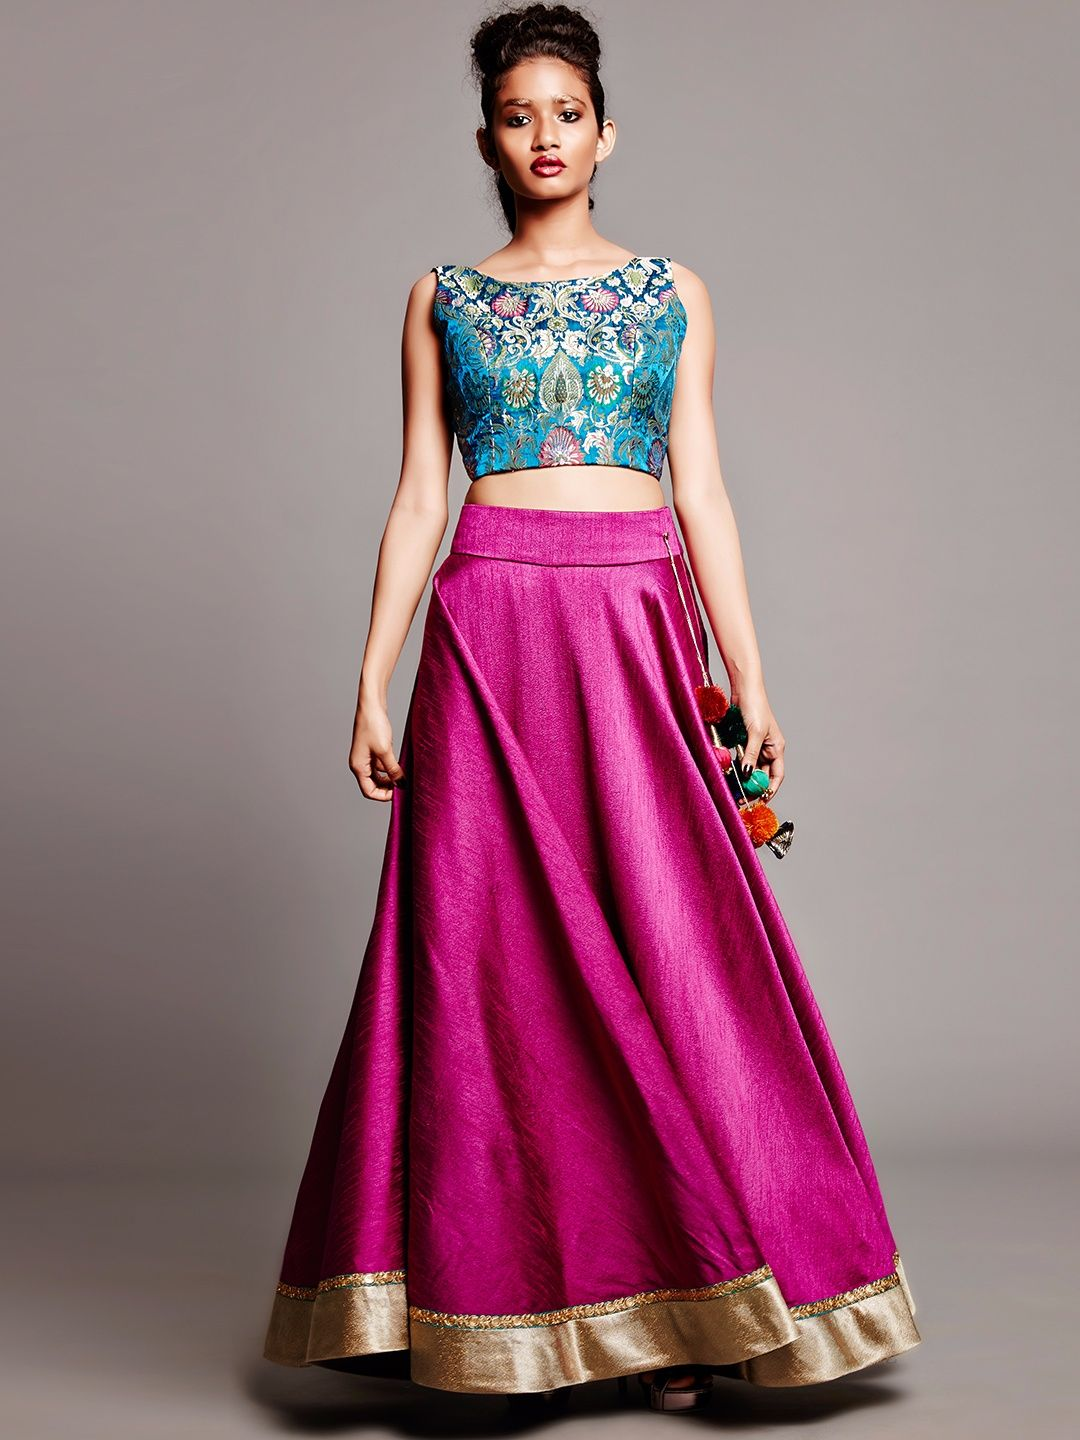 Plain Pink Silk Lehenga Choli | Desi Bolly Fashion | Pinterest